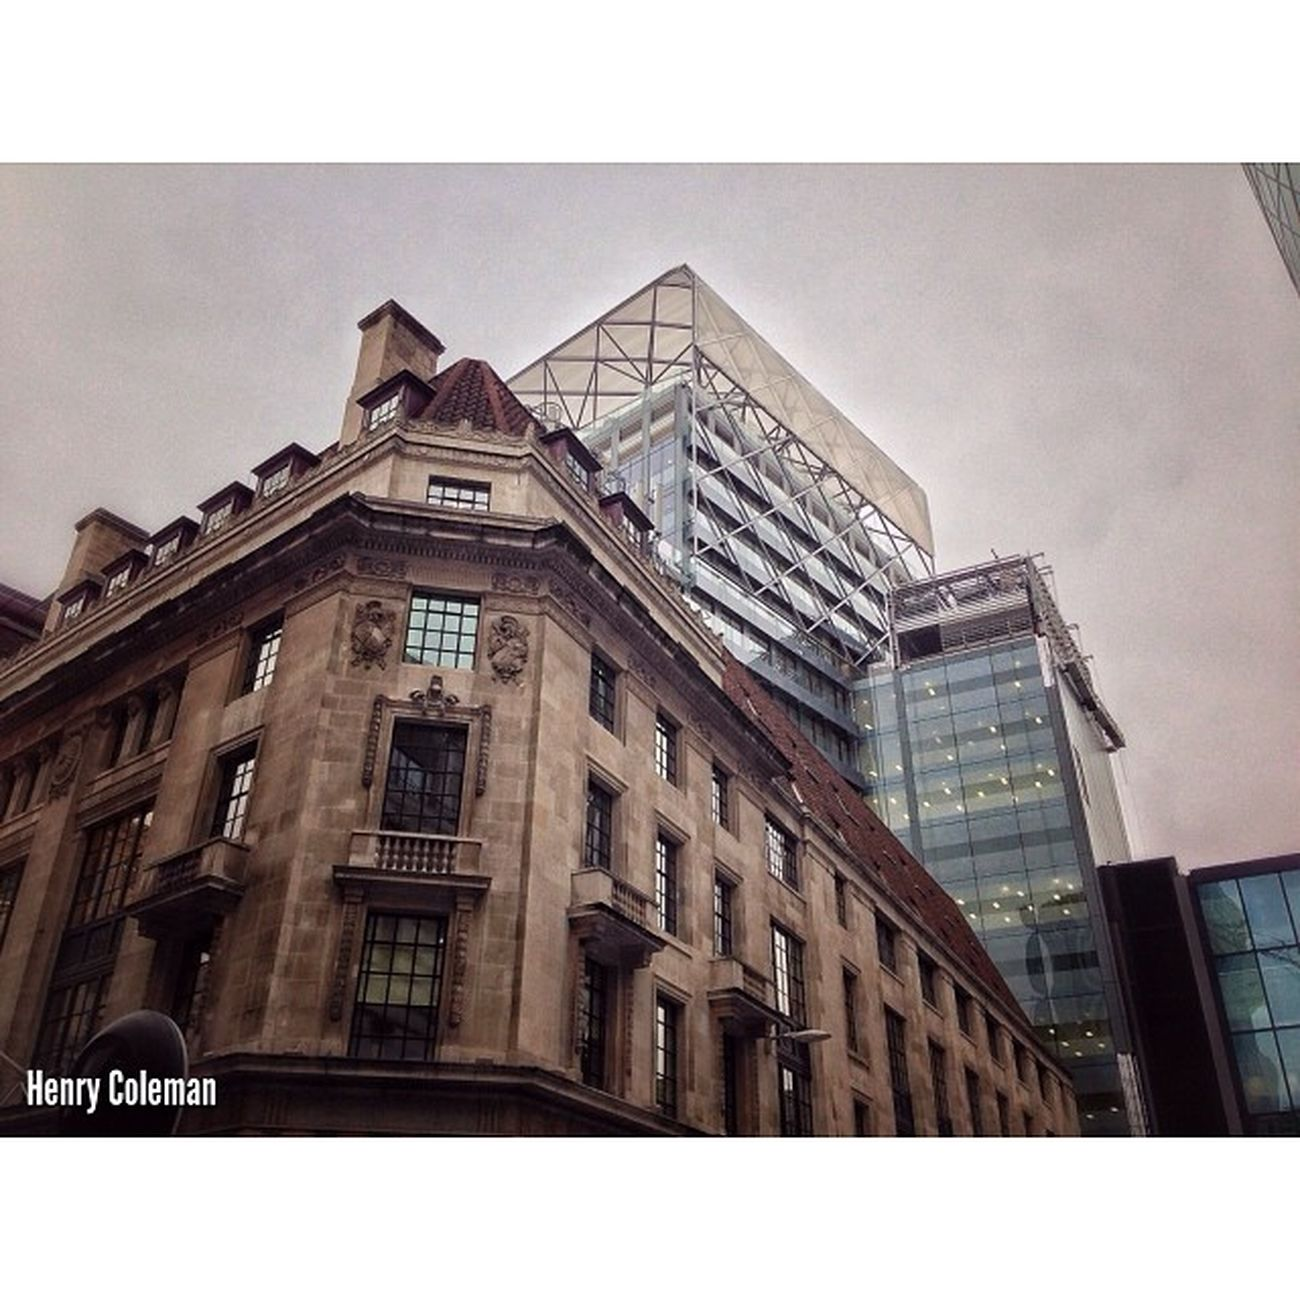 My final 5shotchallenge 5/5 The Baltic Exchange next to the World famous Gherkin! I chose this perspective as you can see some beautiful lines and it looks like the Glass building is Nestled on top of the old building, producing and interesting mix. Udog_peopleandplaces Lovelondon London London_only Londonpop London_only_members Igerslondon Ig_london Ig_england Ig_europe Guesstination Streetshot_london Internationalgrammers The_photographers_emporium Rising_masters Icu_britain Streetshot_london Splendid_editz 16x9 Architecture Building Blueprint